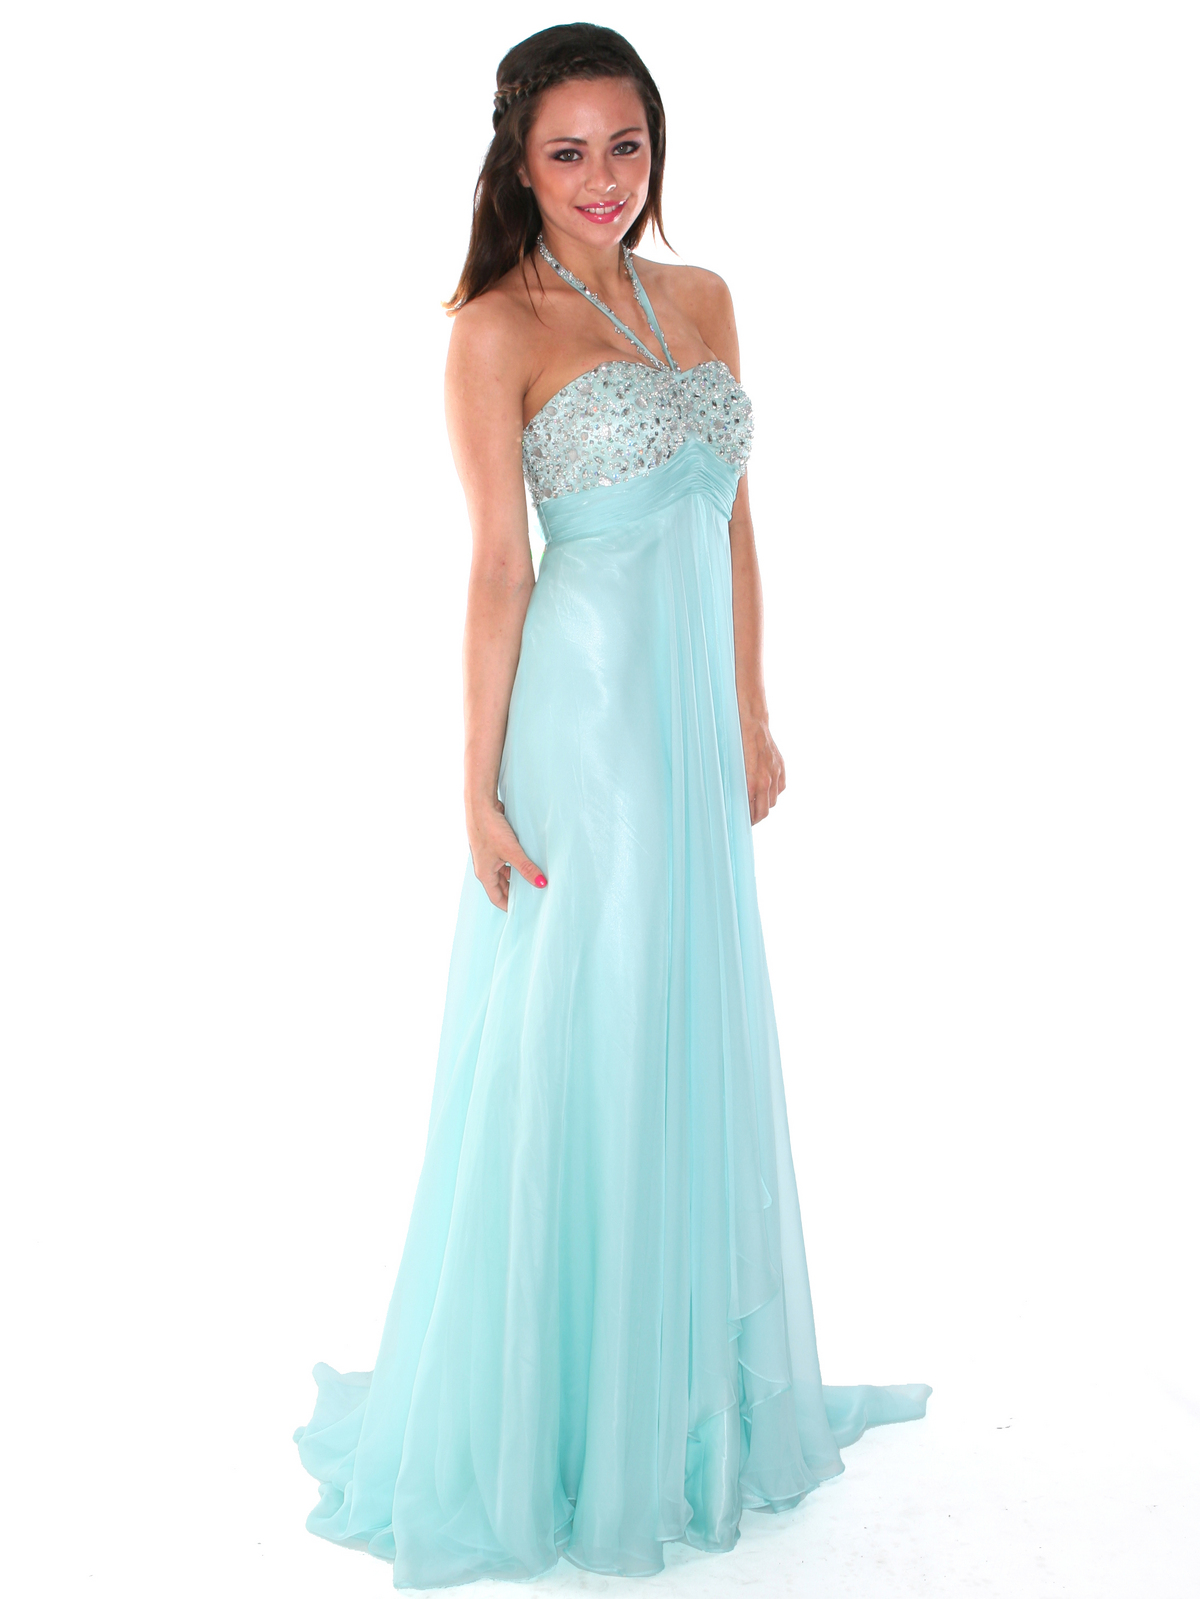 Dazzling Halter Prom Dress | Sung Boutique L.A.